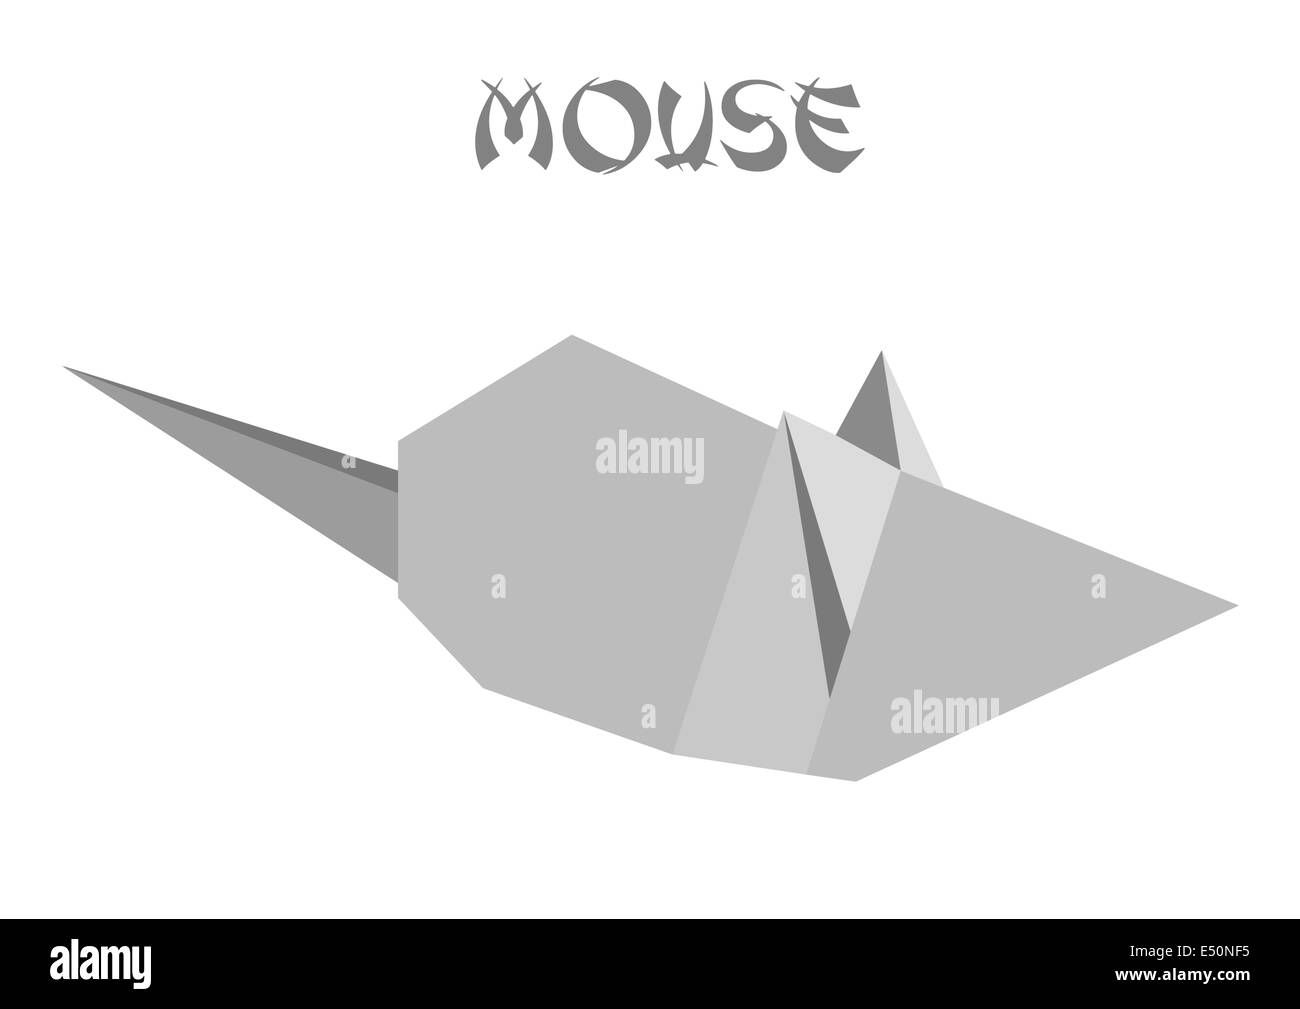 Recycle Pet Black And White Stock Photos Images Alamy Cute Origami Mouse Diagram Image